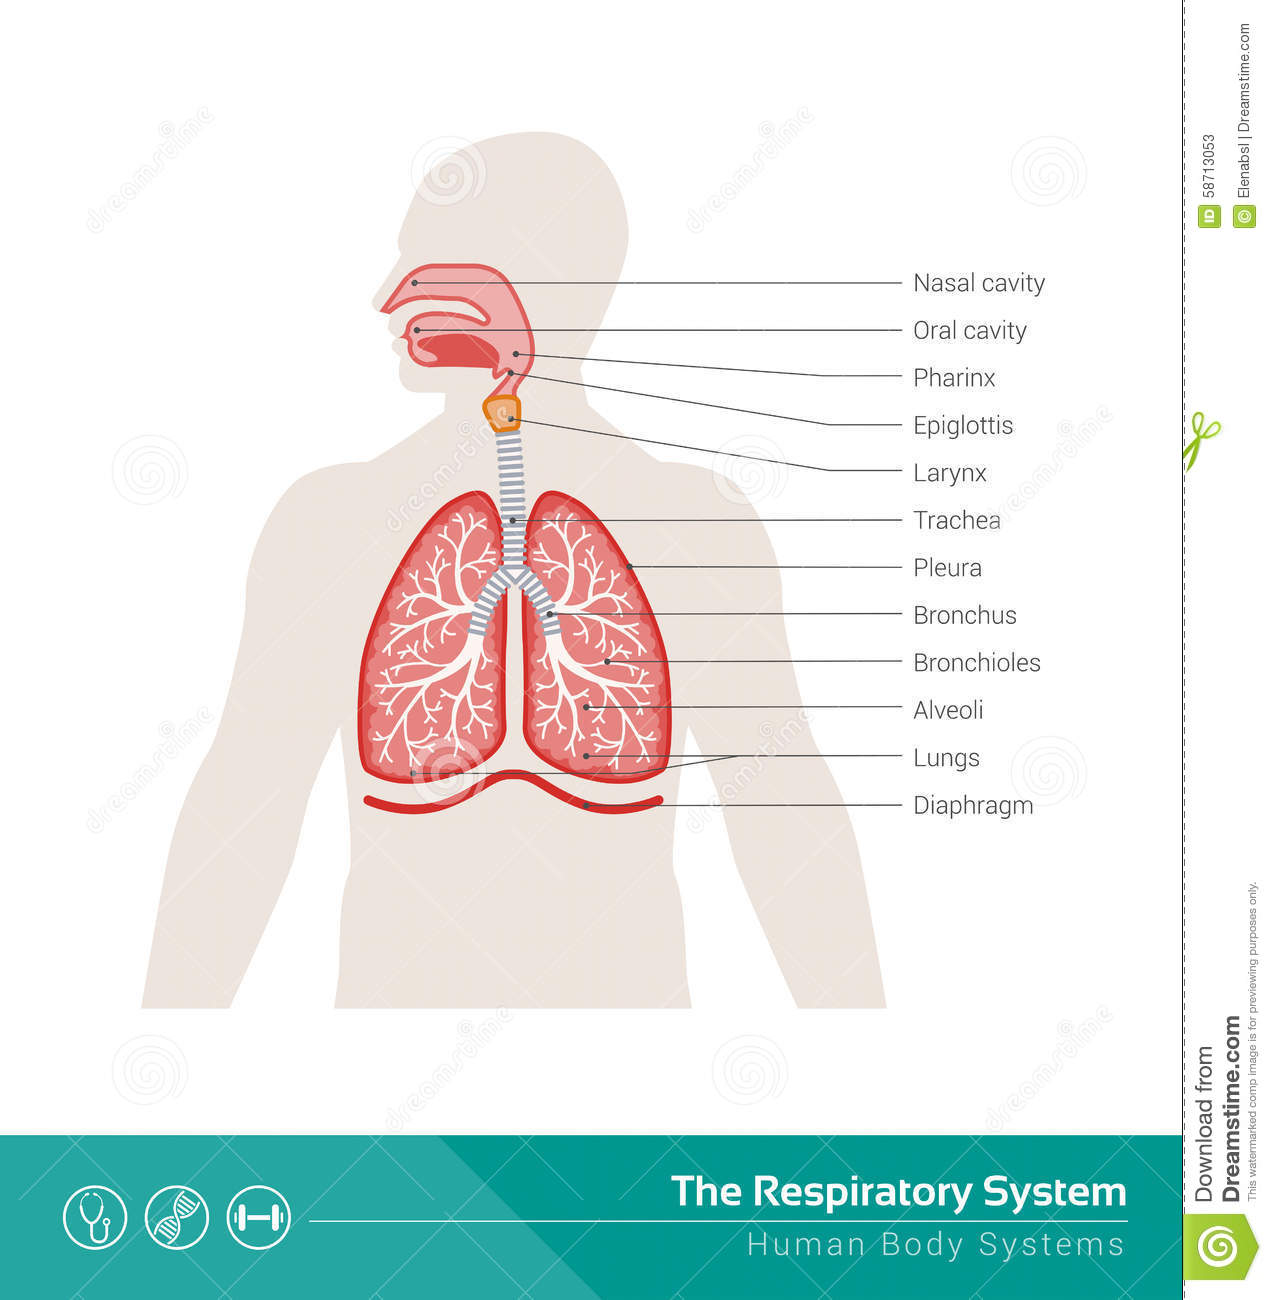 Respiratory System Human Medical Illustration Internal Organs